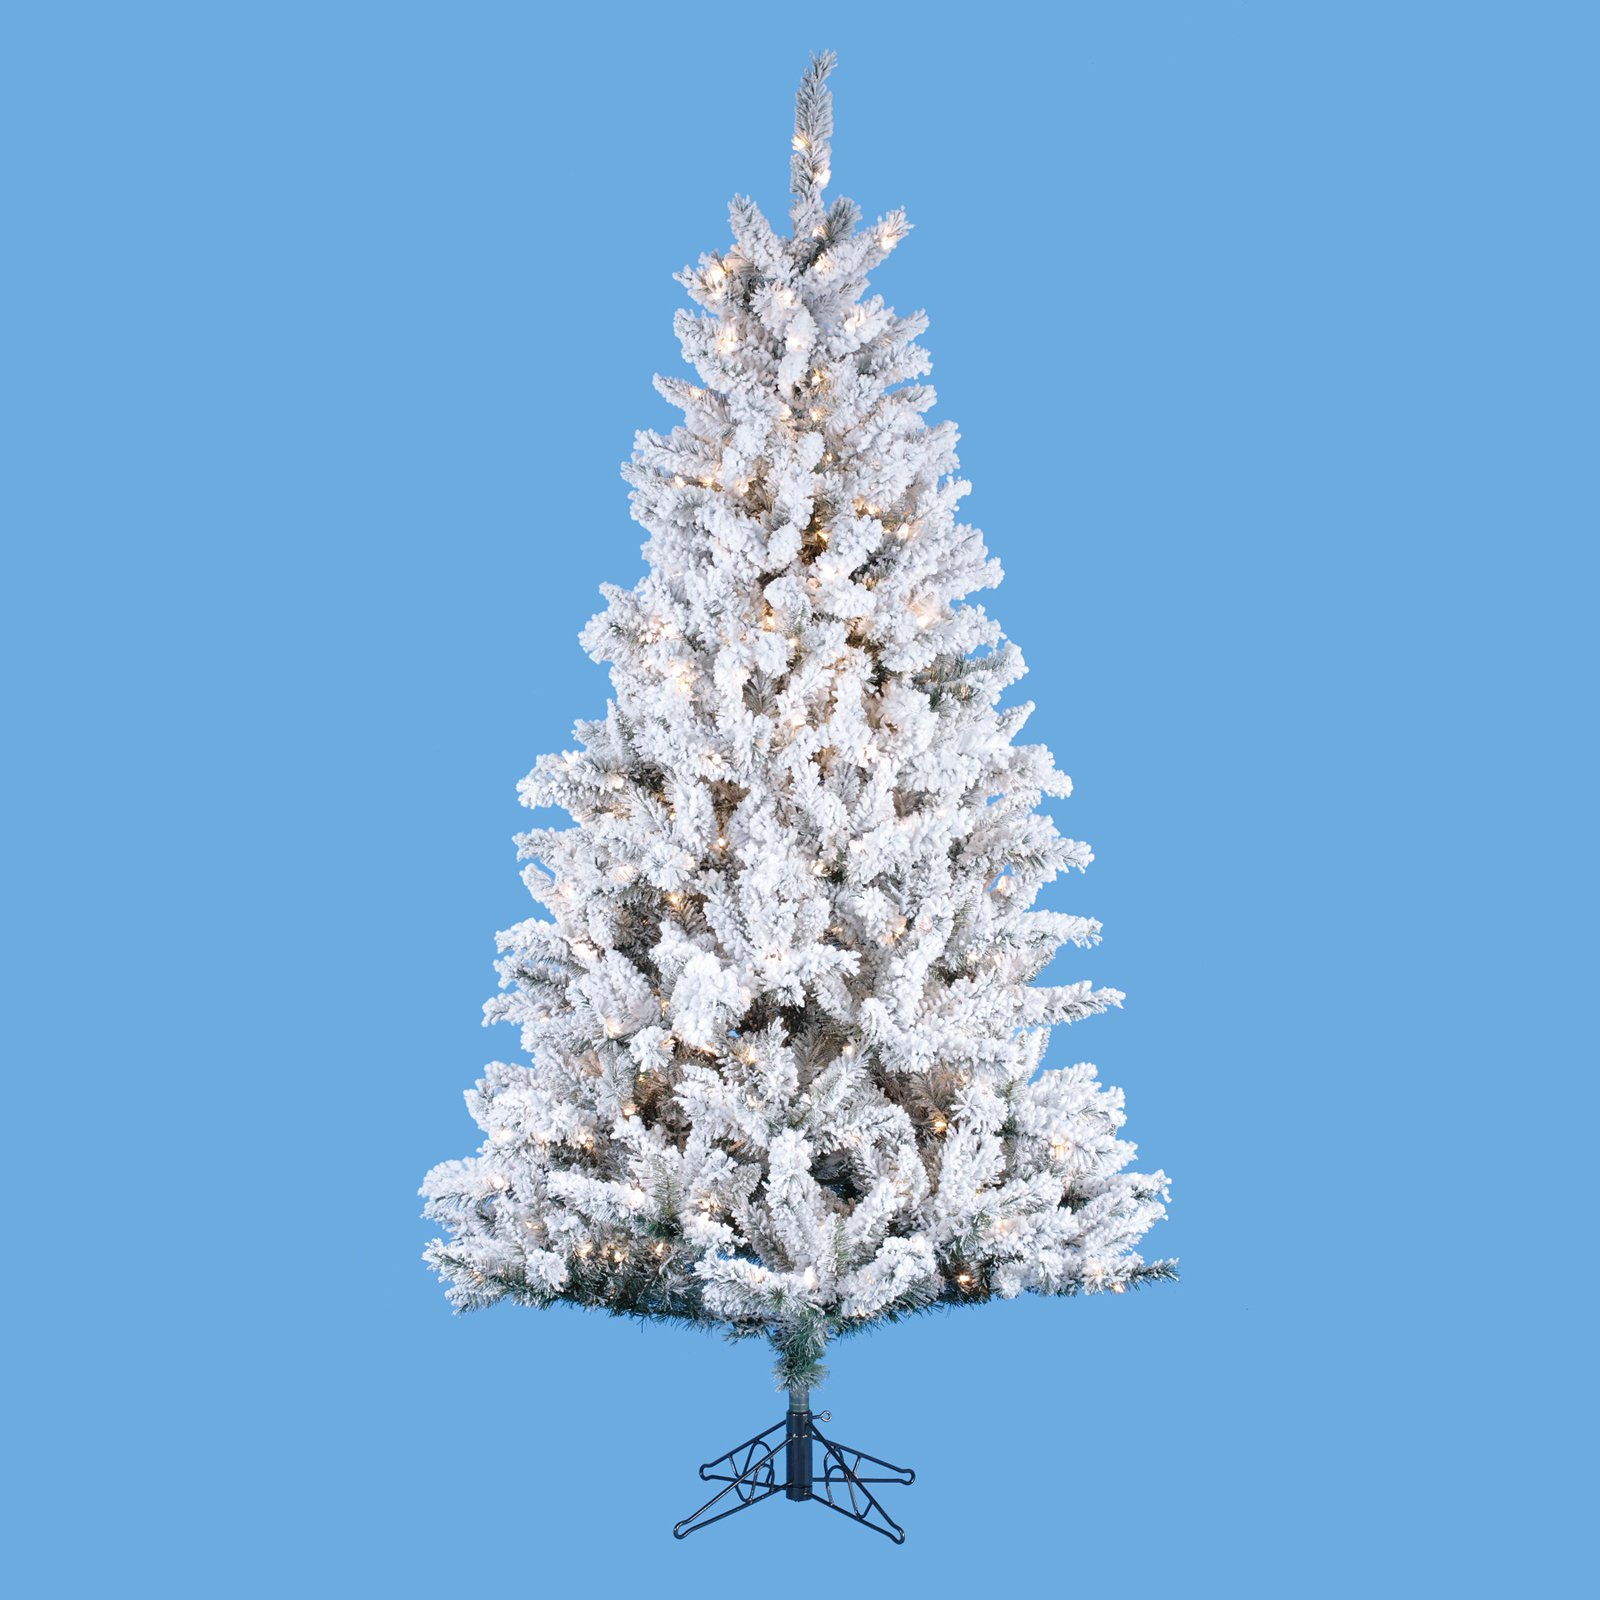 Artifical Christmas Tree Pictures Wallpapers